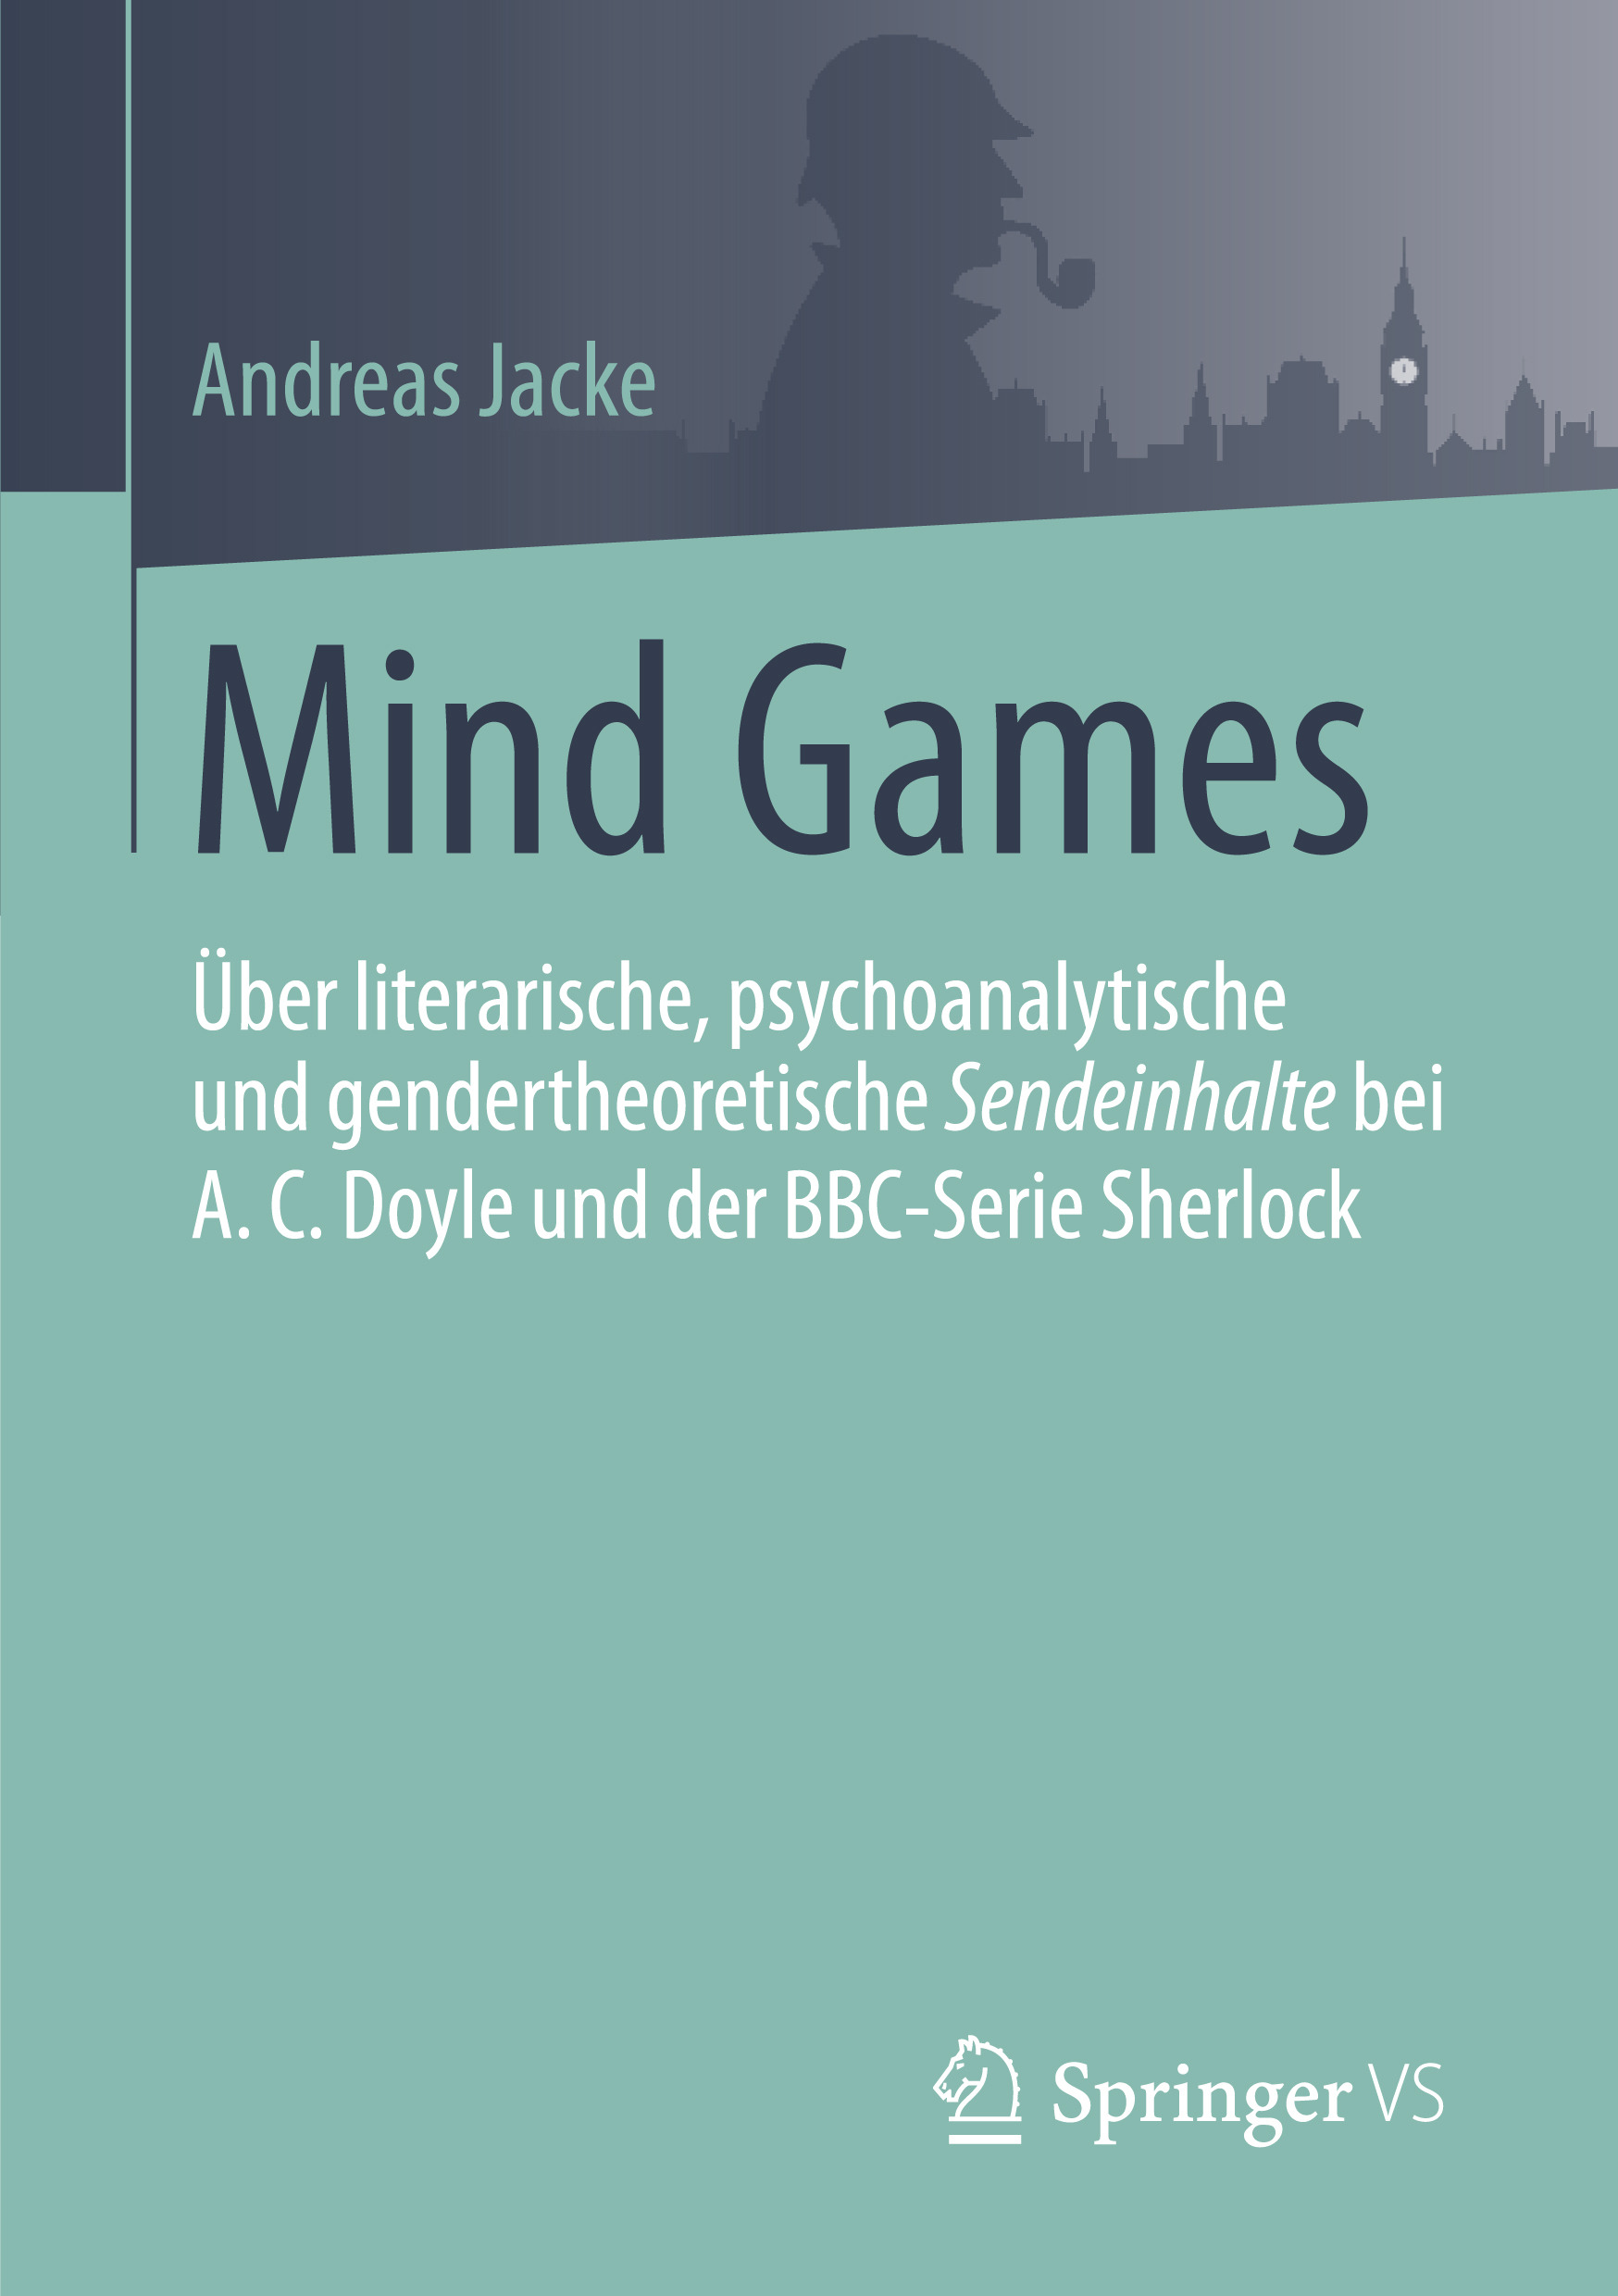 Jacke, Andreas - Mind Games, ebook